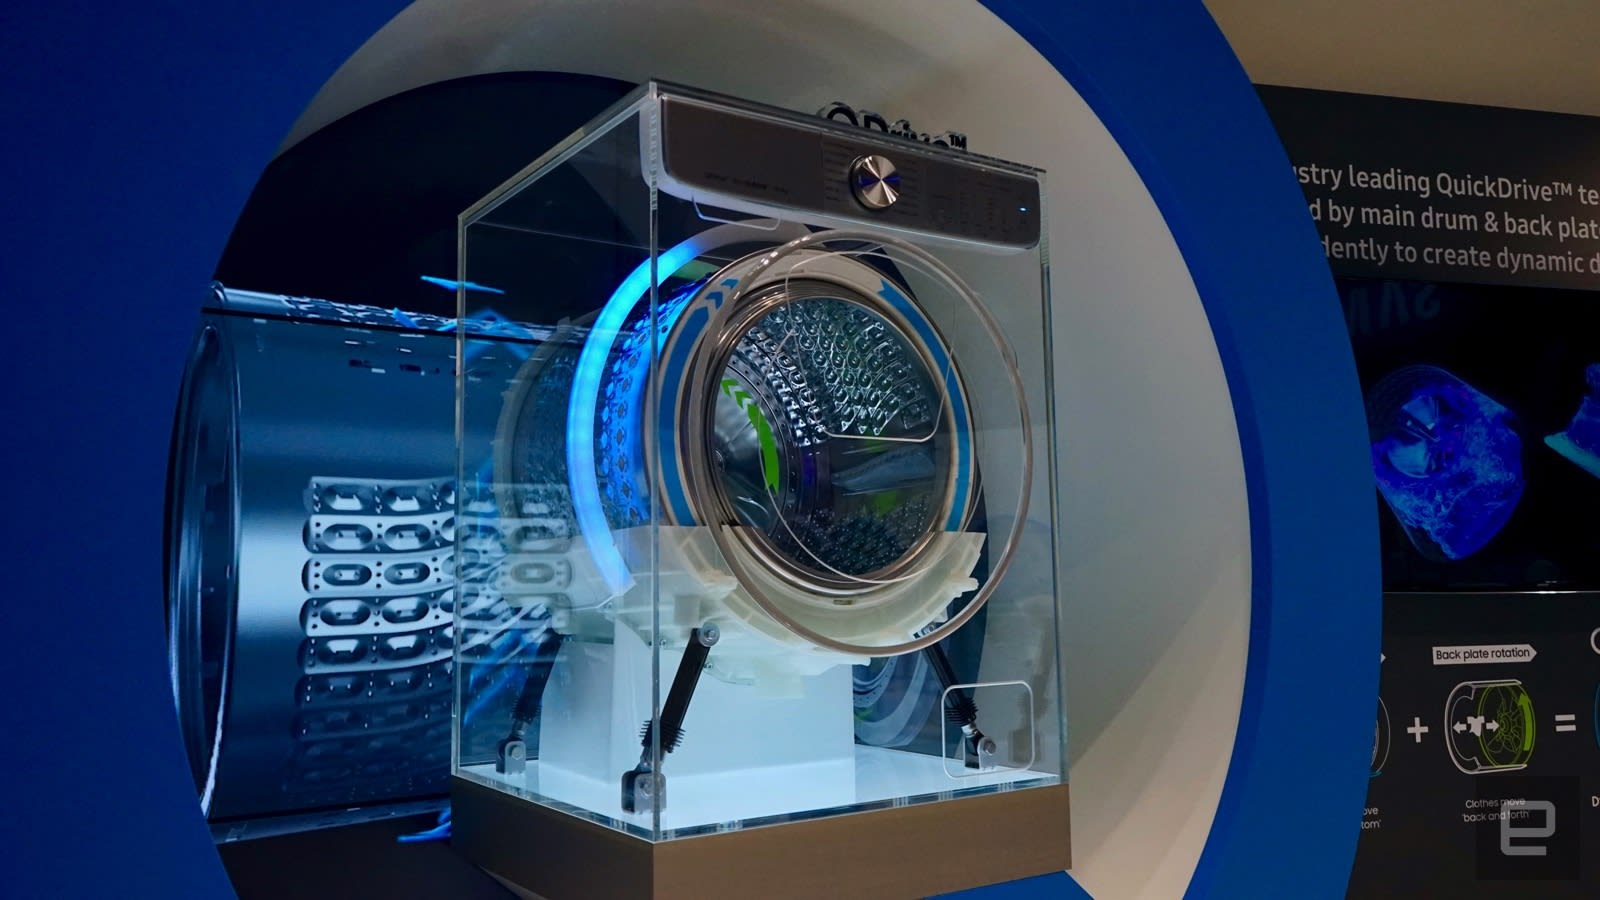 samsung 39 s 39 ai powered 39 washer is just trying to save you time. Black Bedroom Furniture Sets. Home Design Ideas